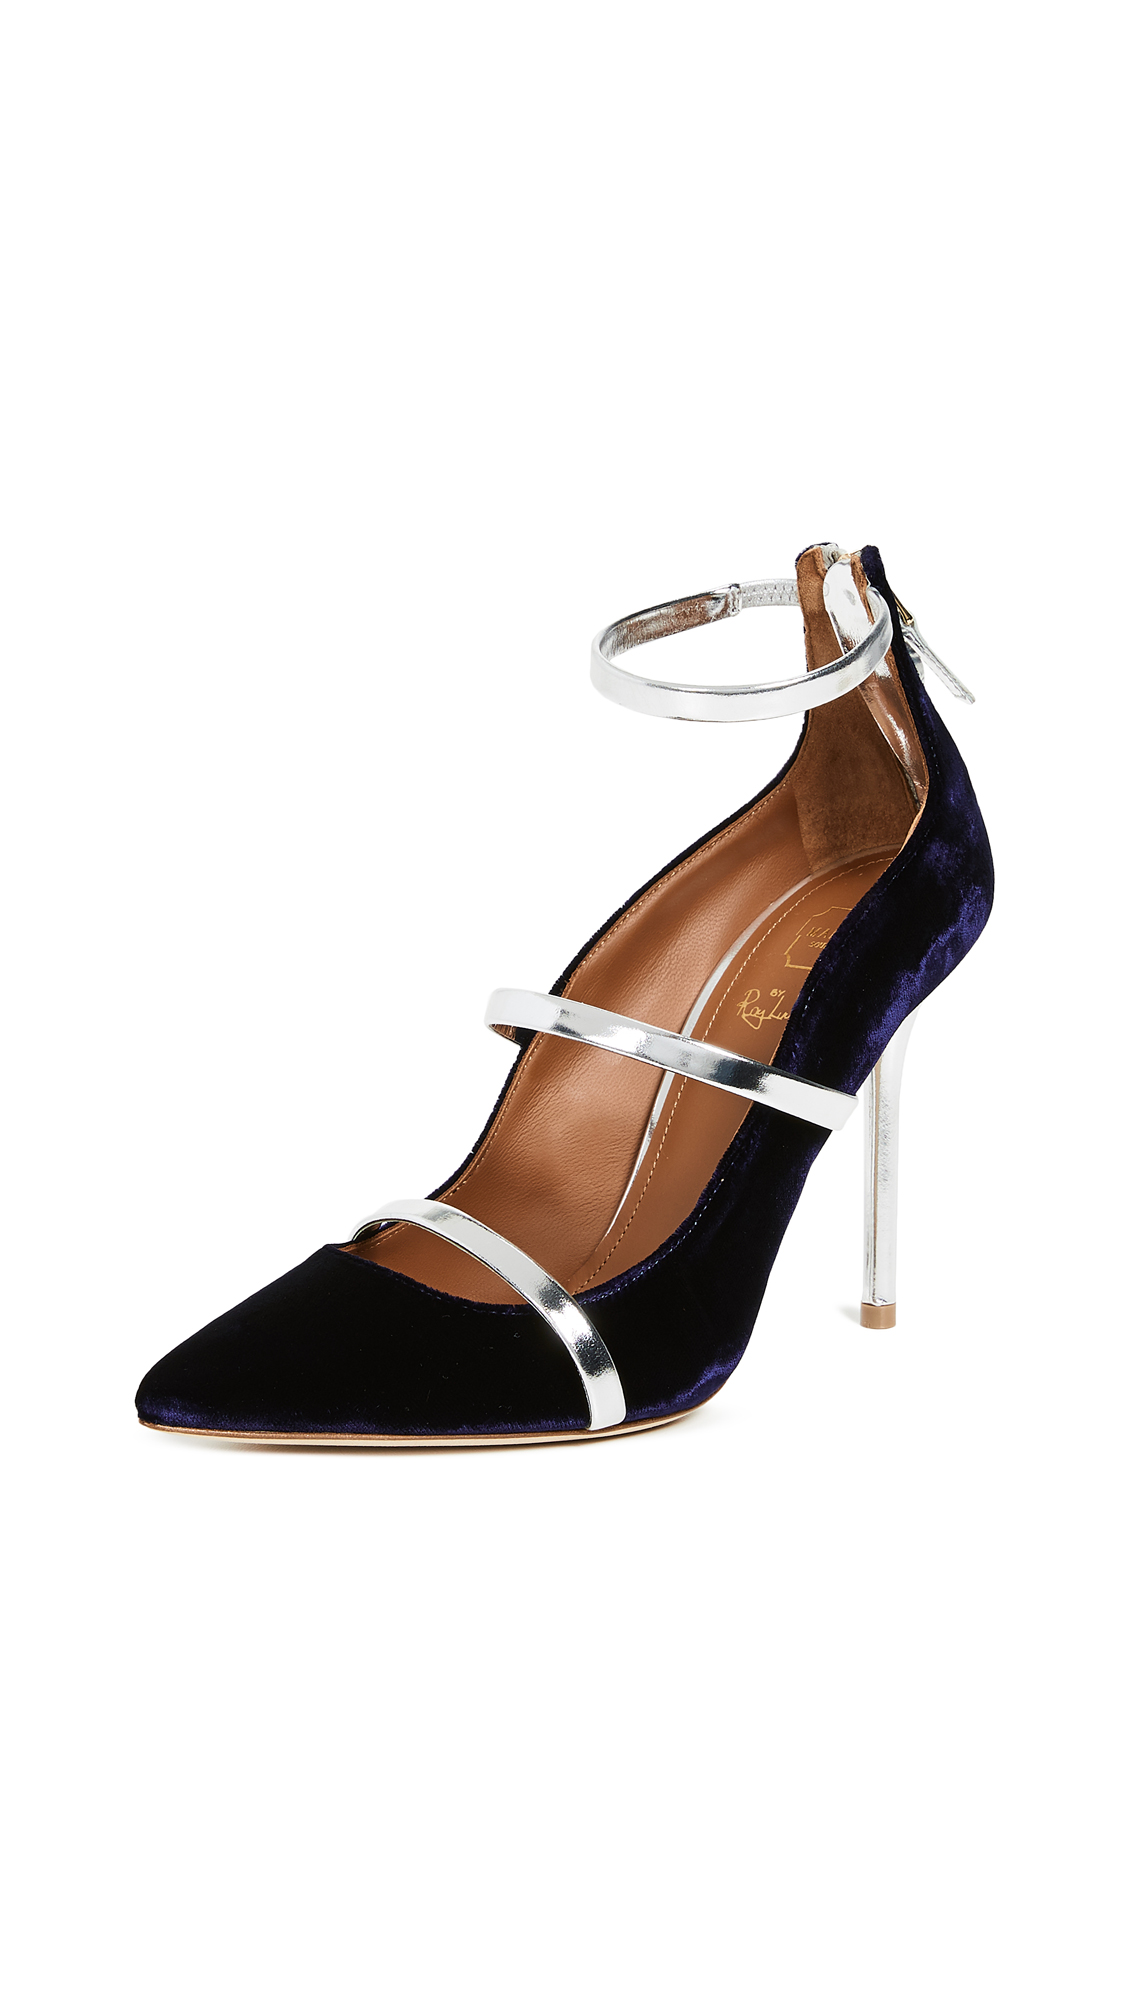 Malone Souliers by Roy Luwolt Robyn 100mm Pumps - Navy/Silver